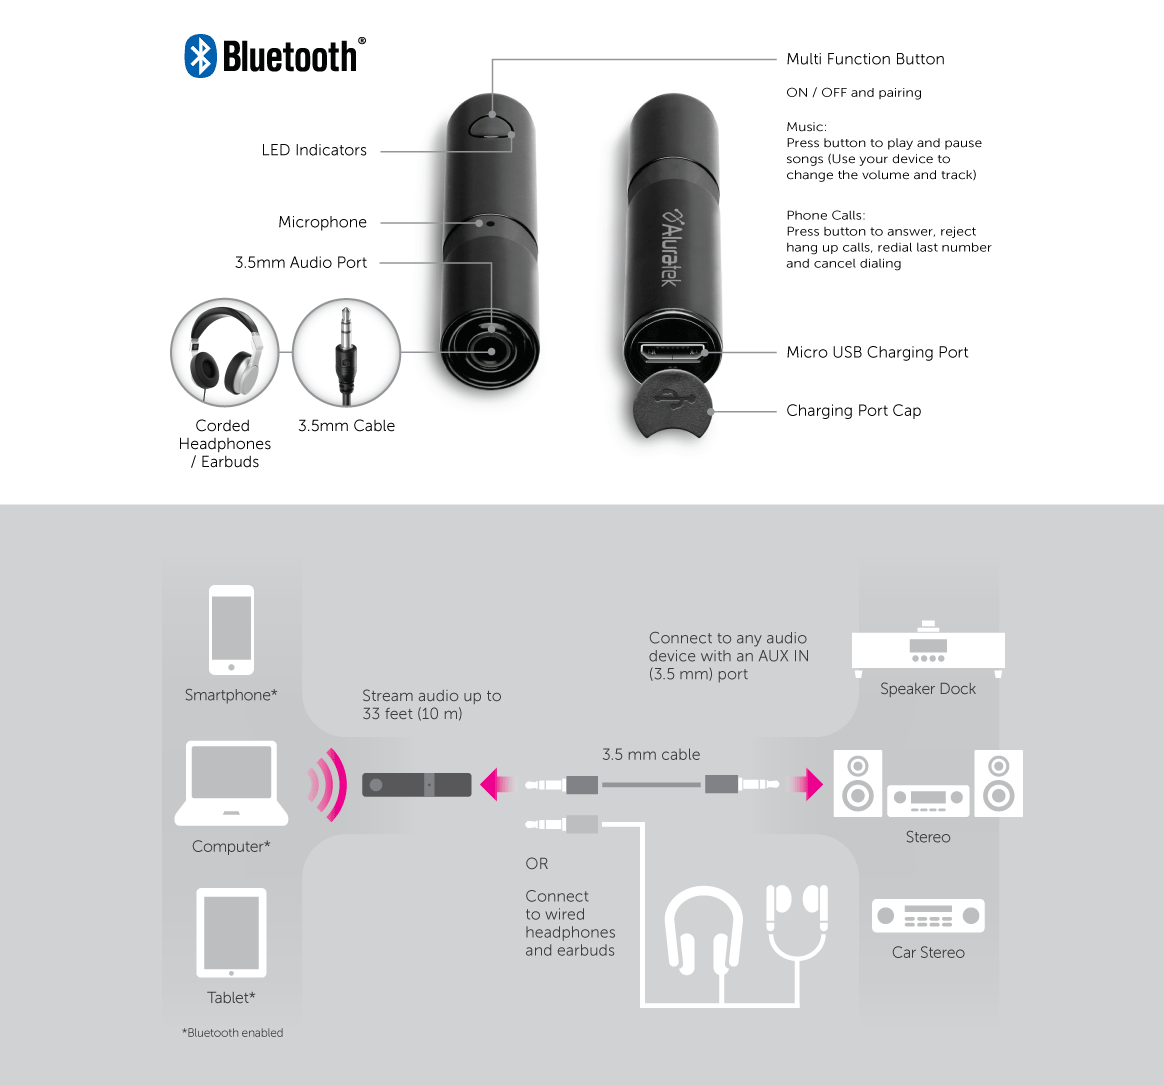 Bluetooth Audio Receiver with Built-in Microphone